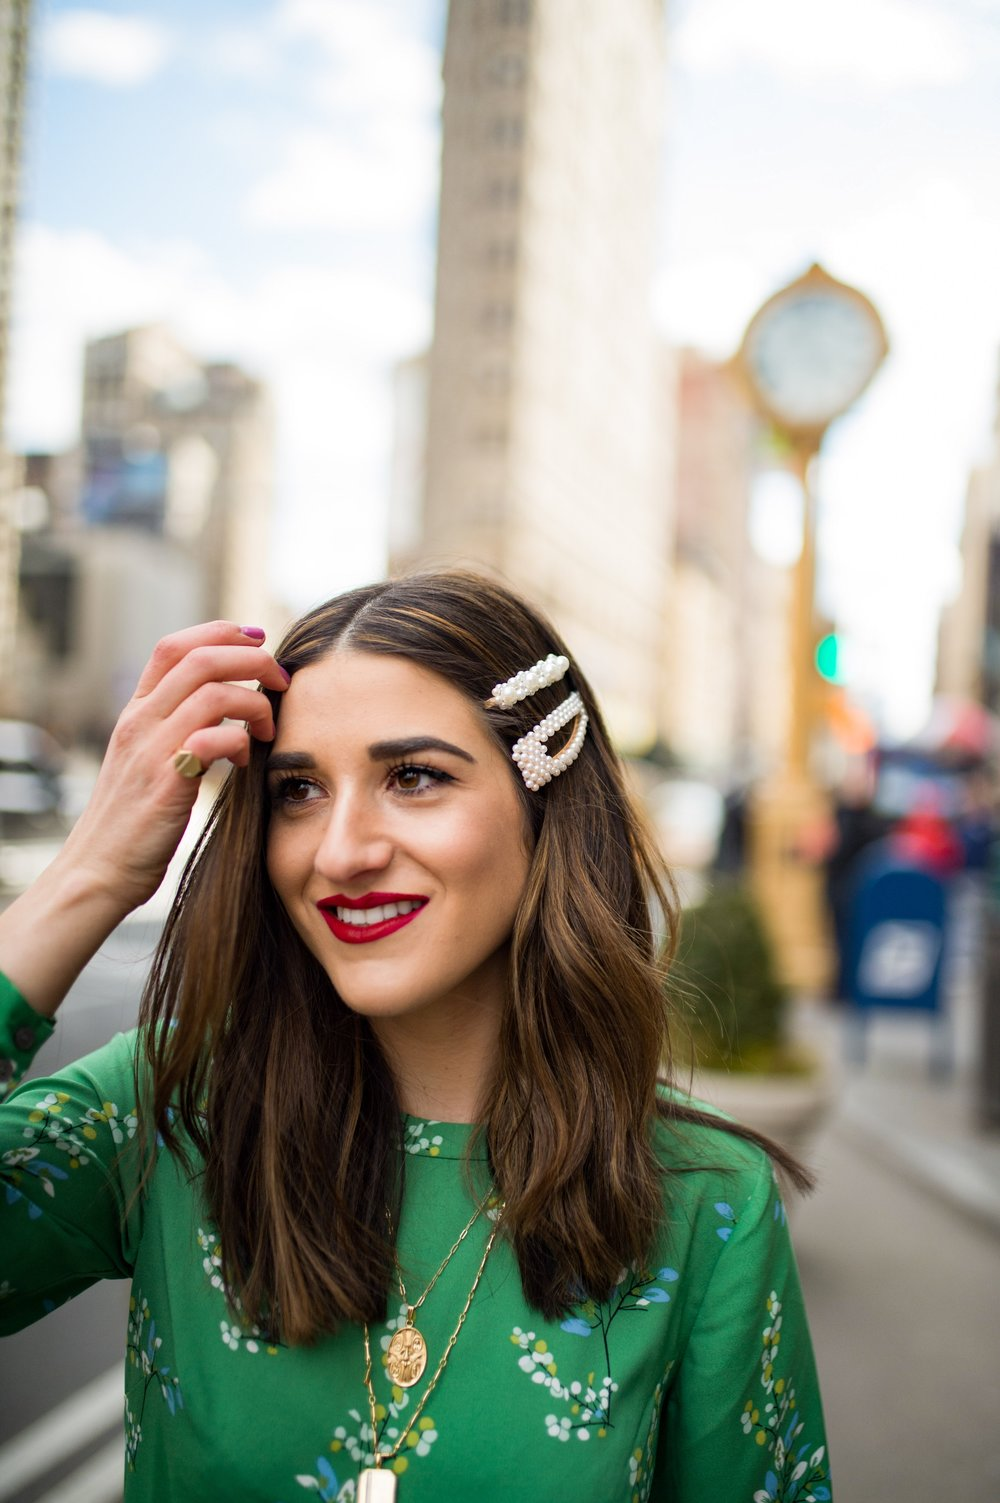 Fresh Cut And Color Sharon Dorram Color at Sally Hershberger Esther Santer Fashion Blog NYC Street Style Blogger Outfit OOTD Trendy Shop Balayage Honey Highlights New York City Upscale Salon Green Floral Dress Spring Pearl Barrettes Hair  Accessories.JPG